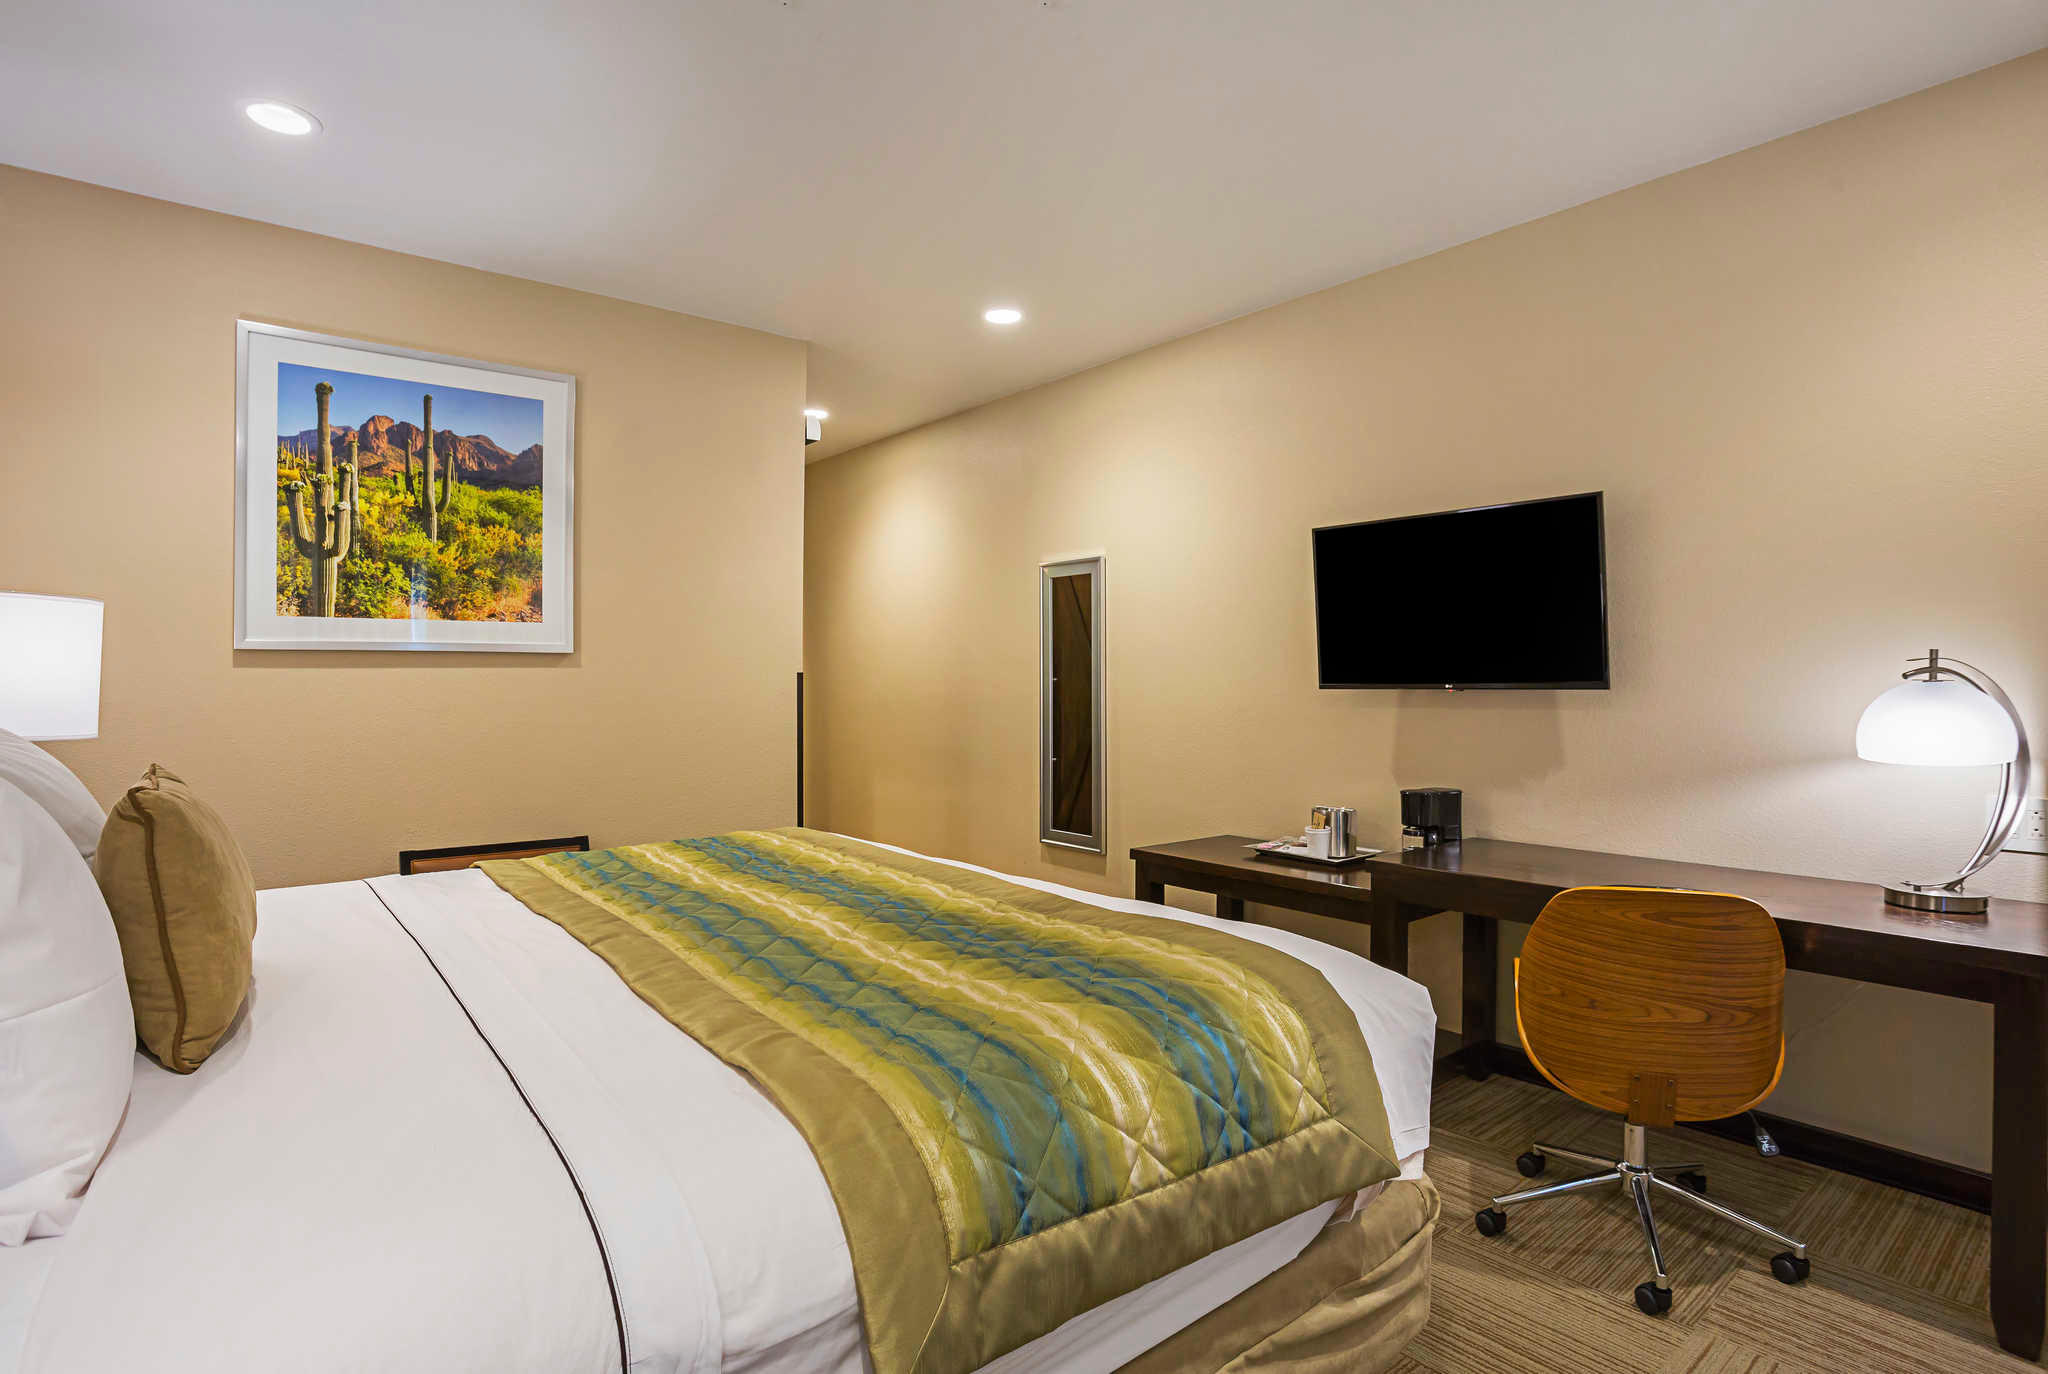 Hotels Near Sunland Park Casino